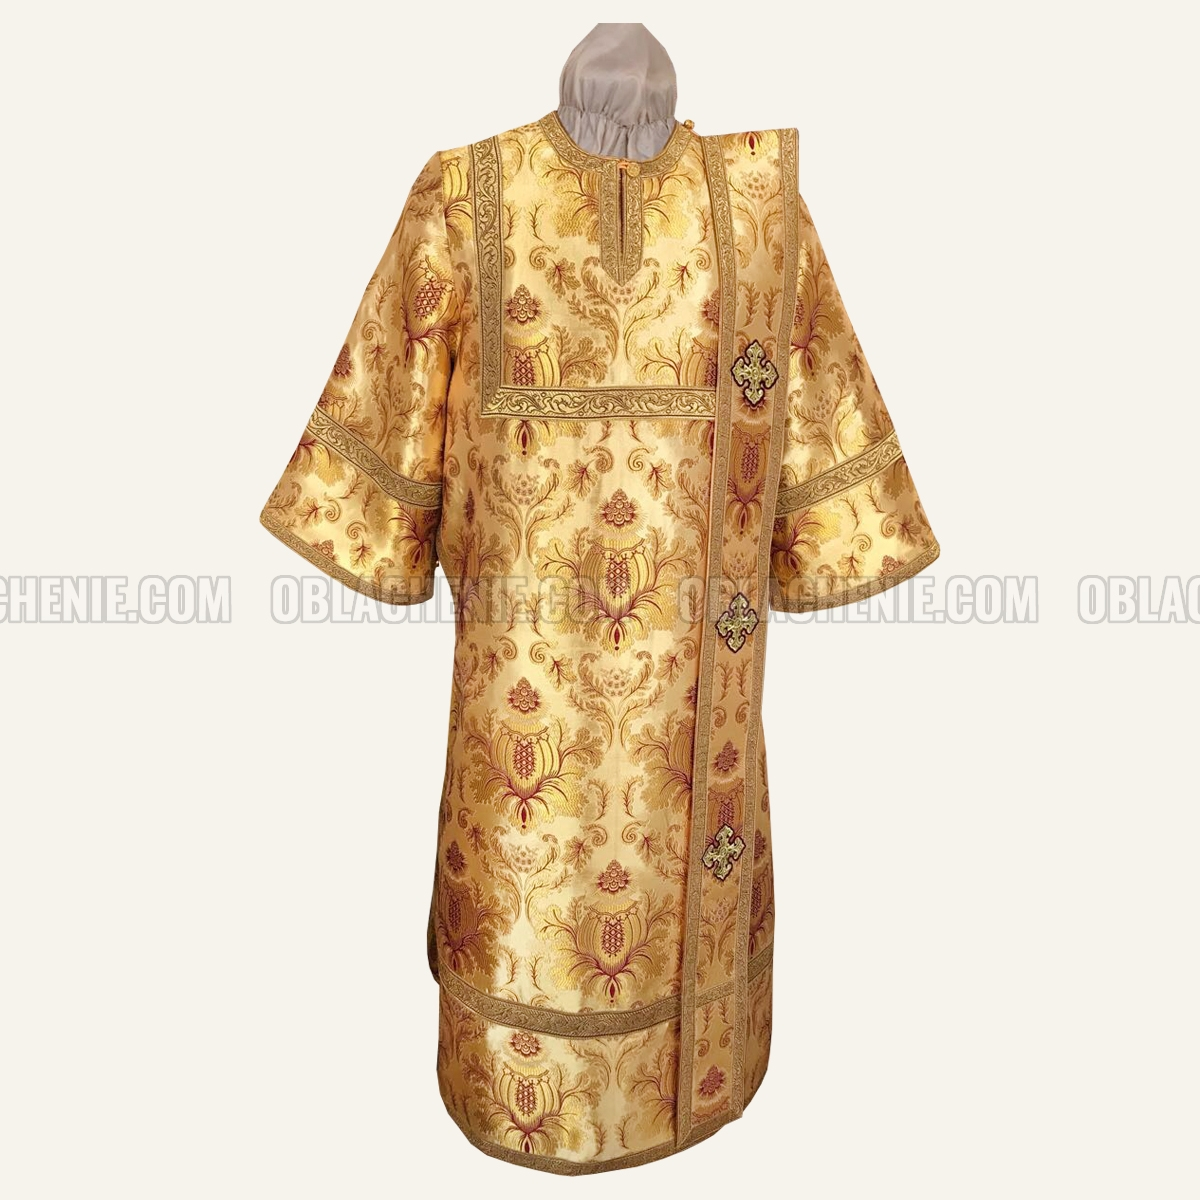 Deacon's vestments 10359